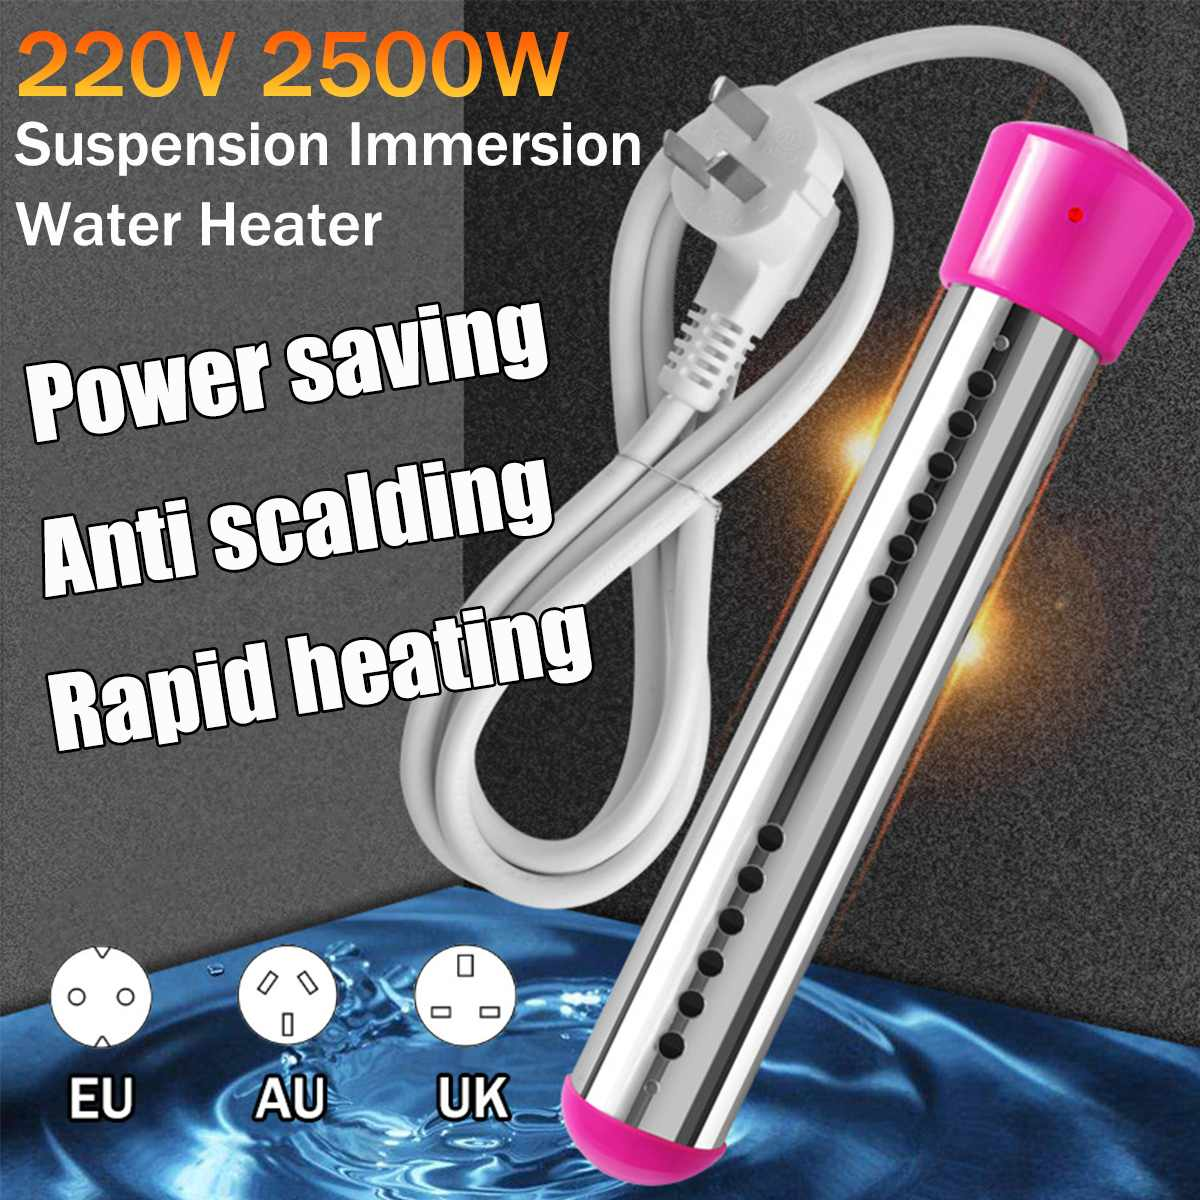 2500W 220V Portable Suspension Electric Water Heater Element Boiler For Inflatable Pool Tub Travel Camping Travel